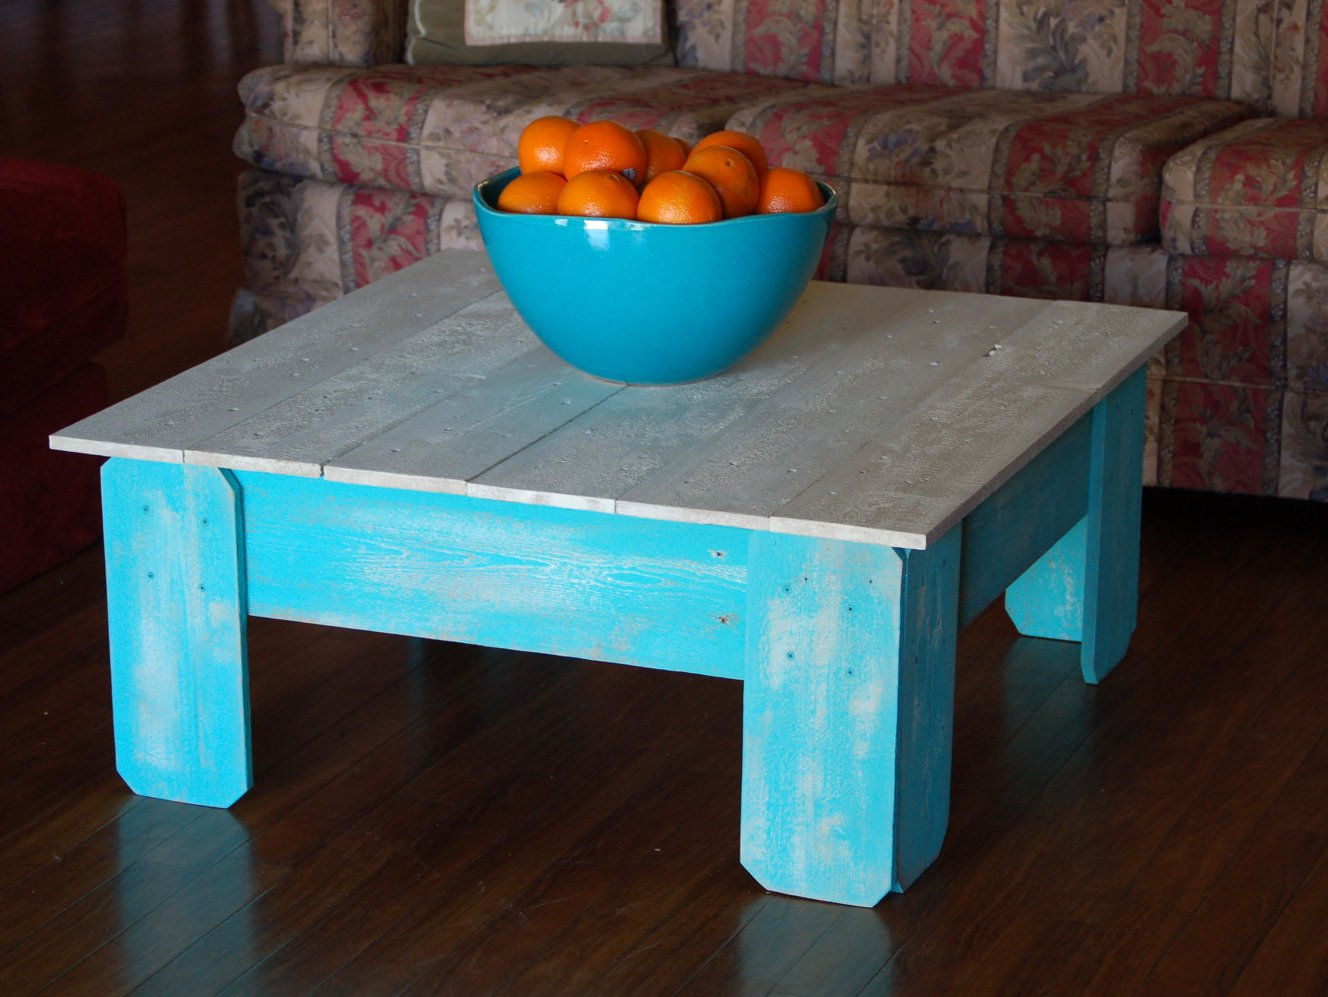 Preferred Distressed White And Blue Coffee Table | Coffee Tables OW27